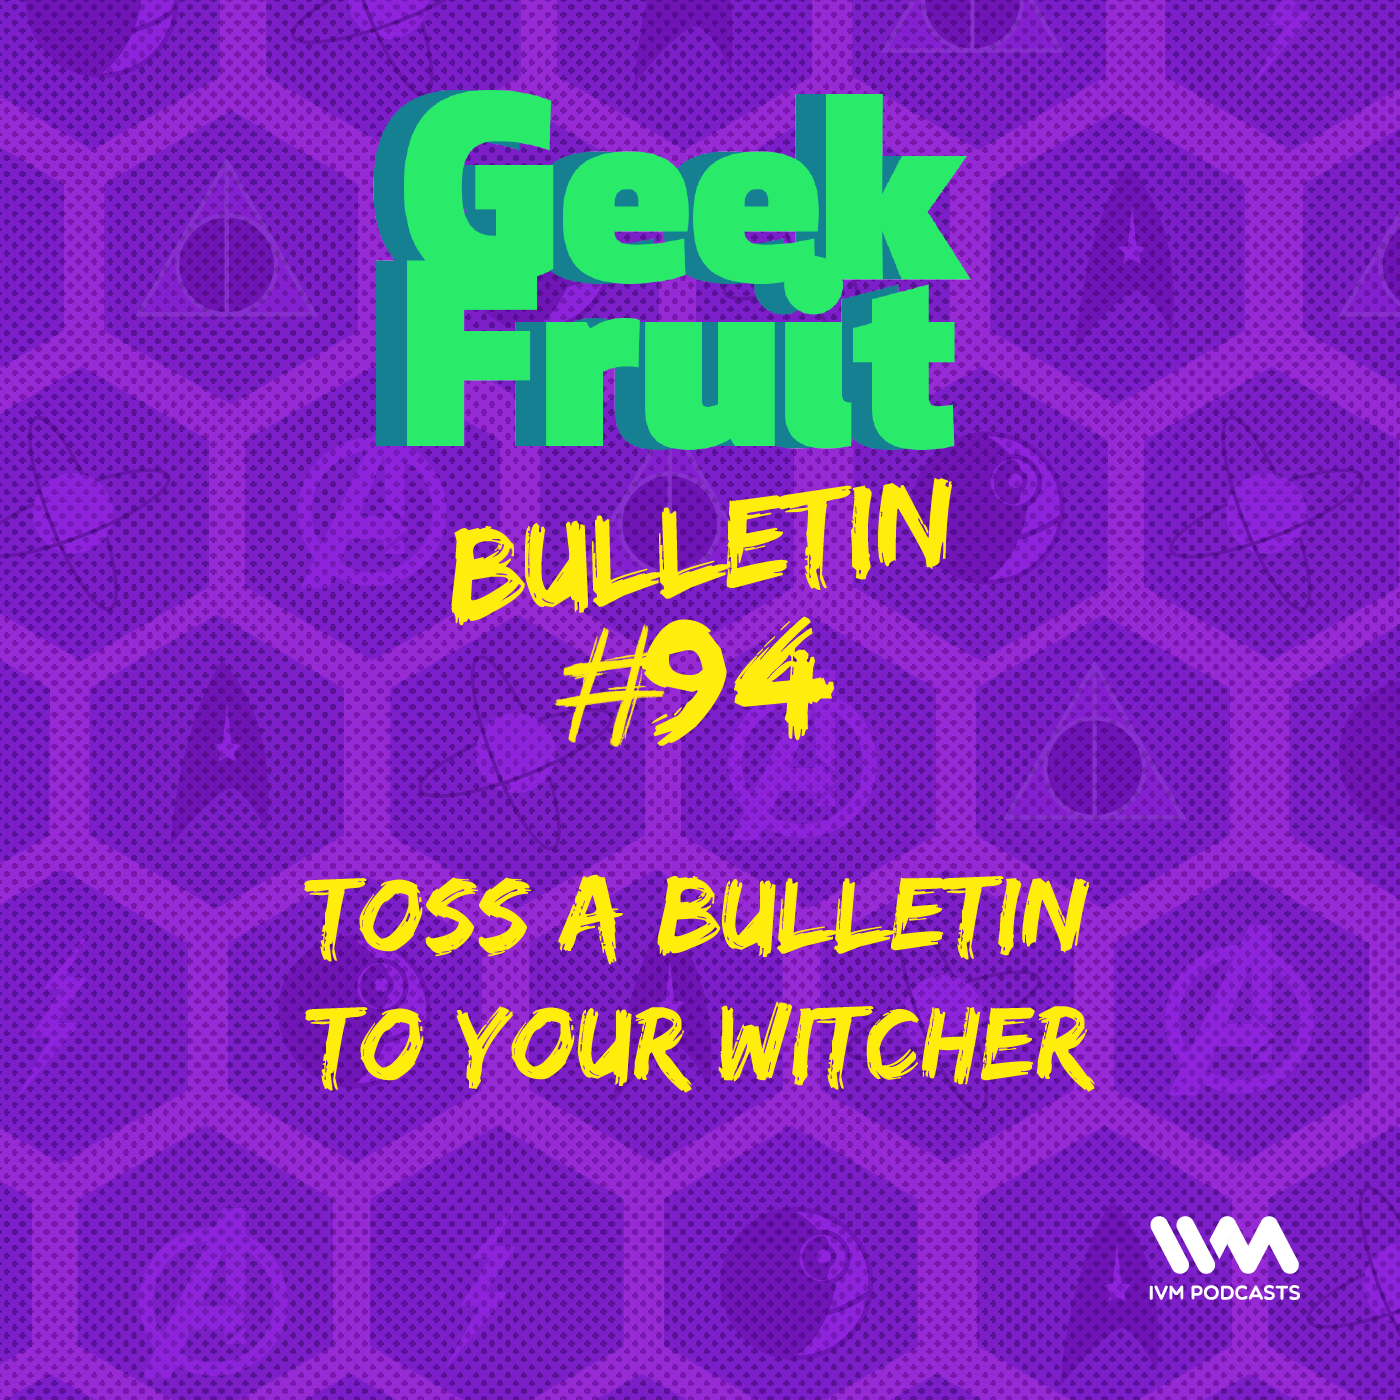 Ep. 305 Bulletin #94: Toss A Bulletin To Your Witcher